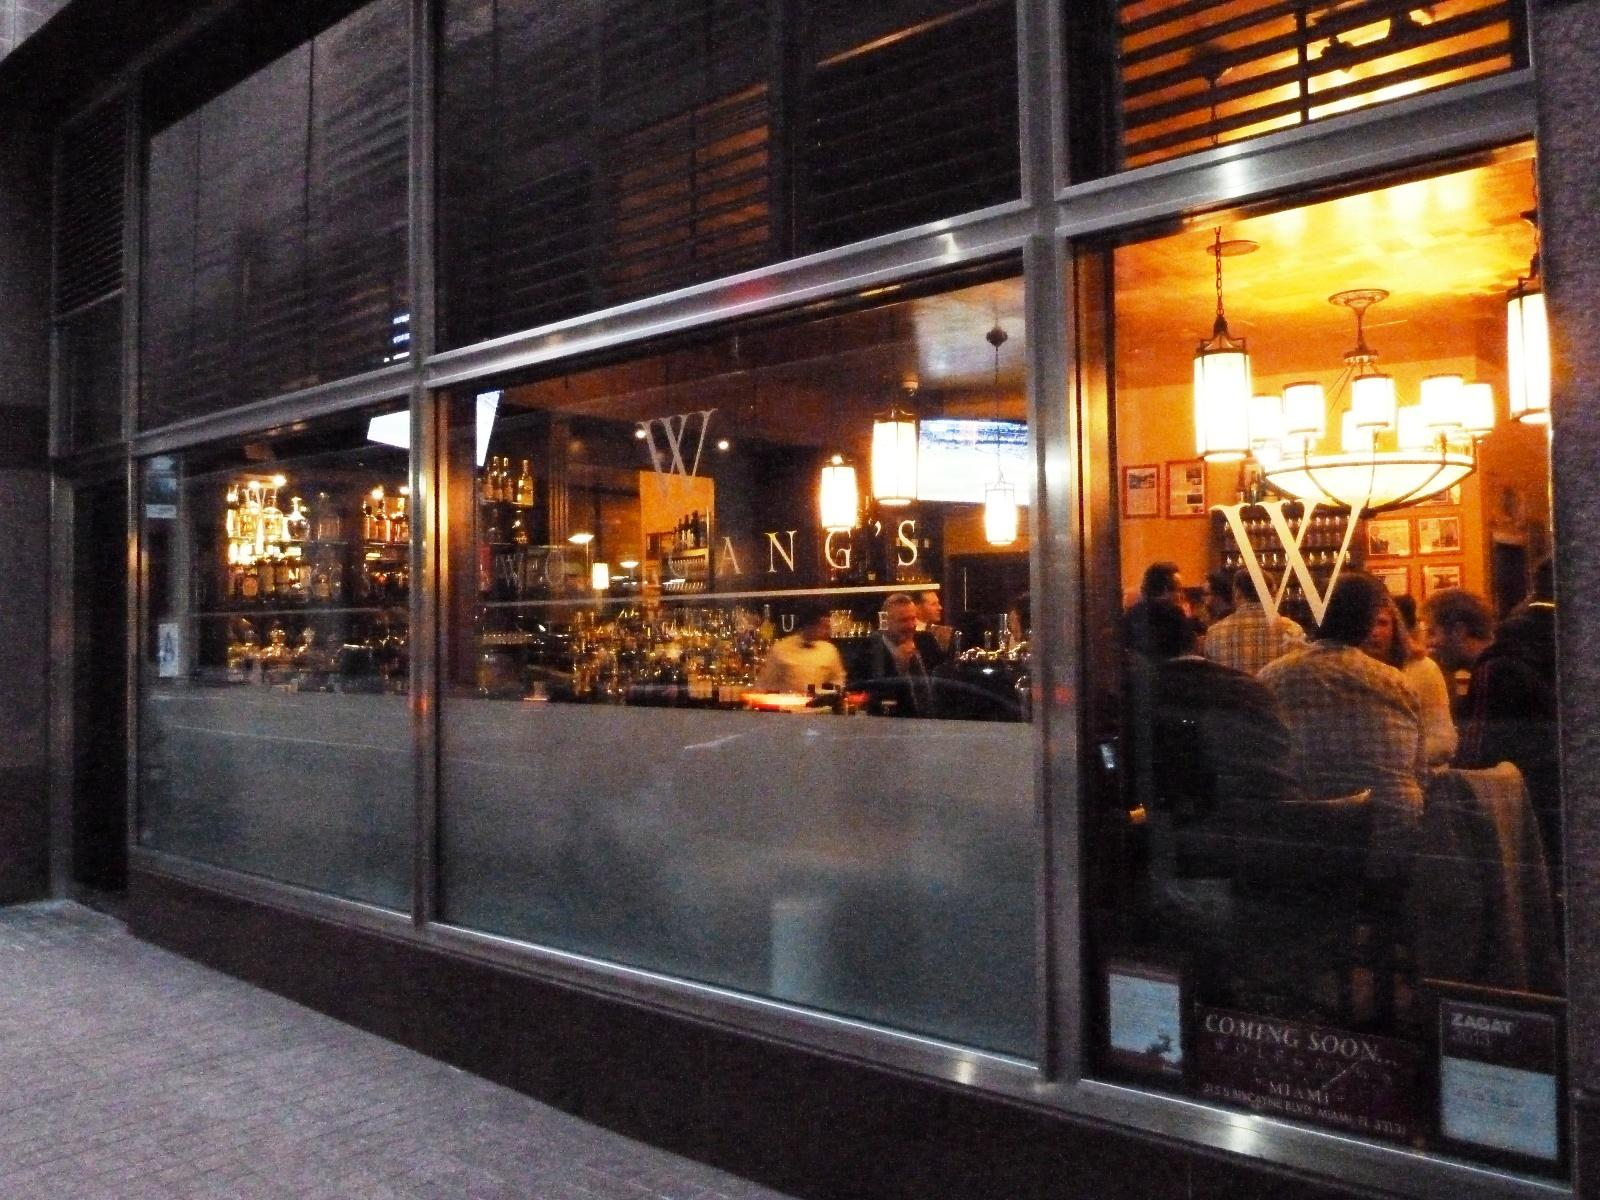 Wolfgang's Steakhouse Midtown 54th St.